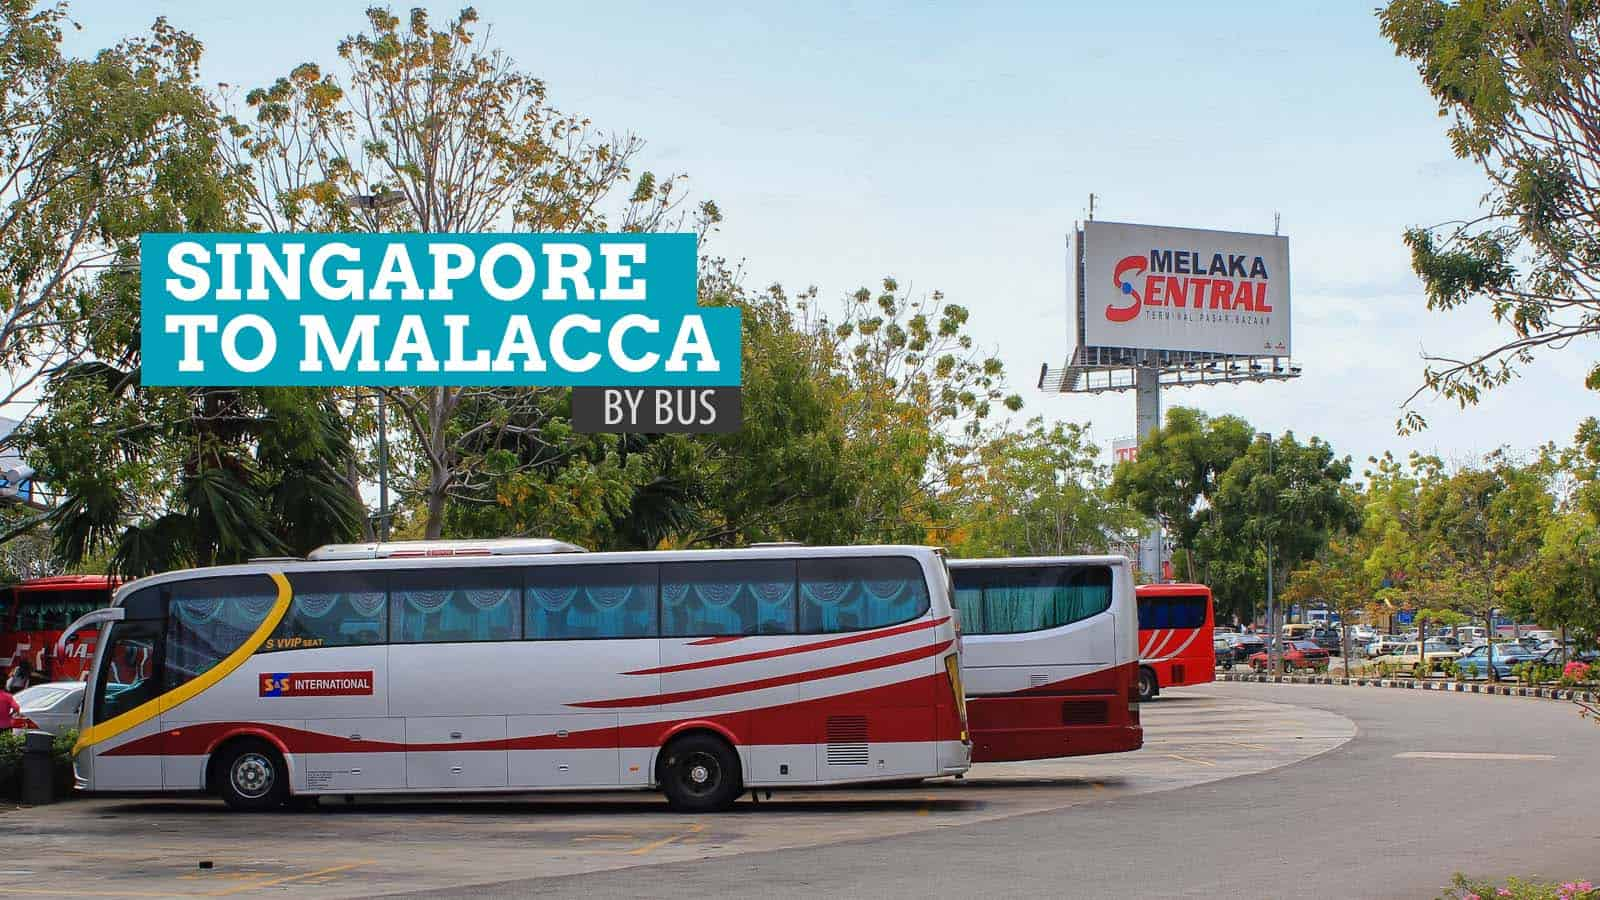 How To Get Malacca From Singapore By Bus